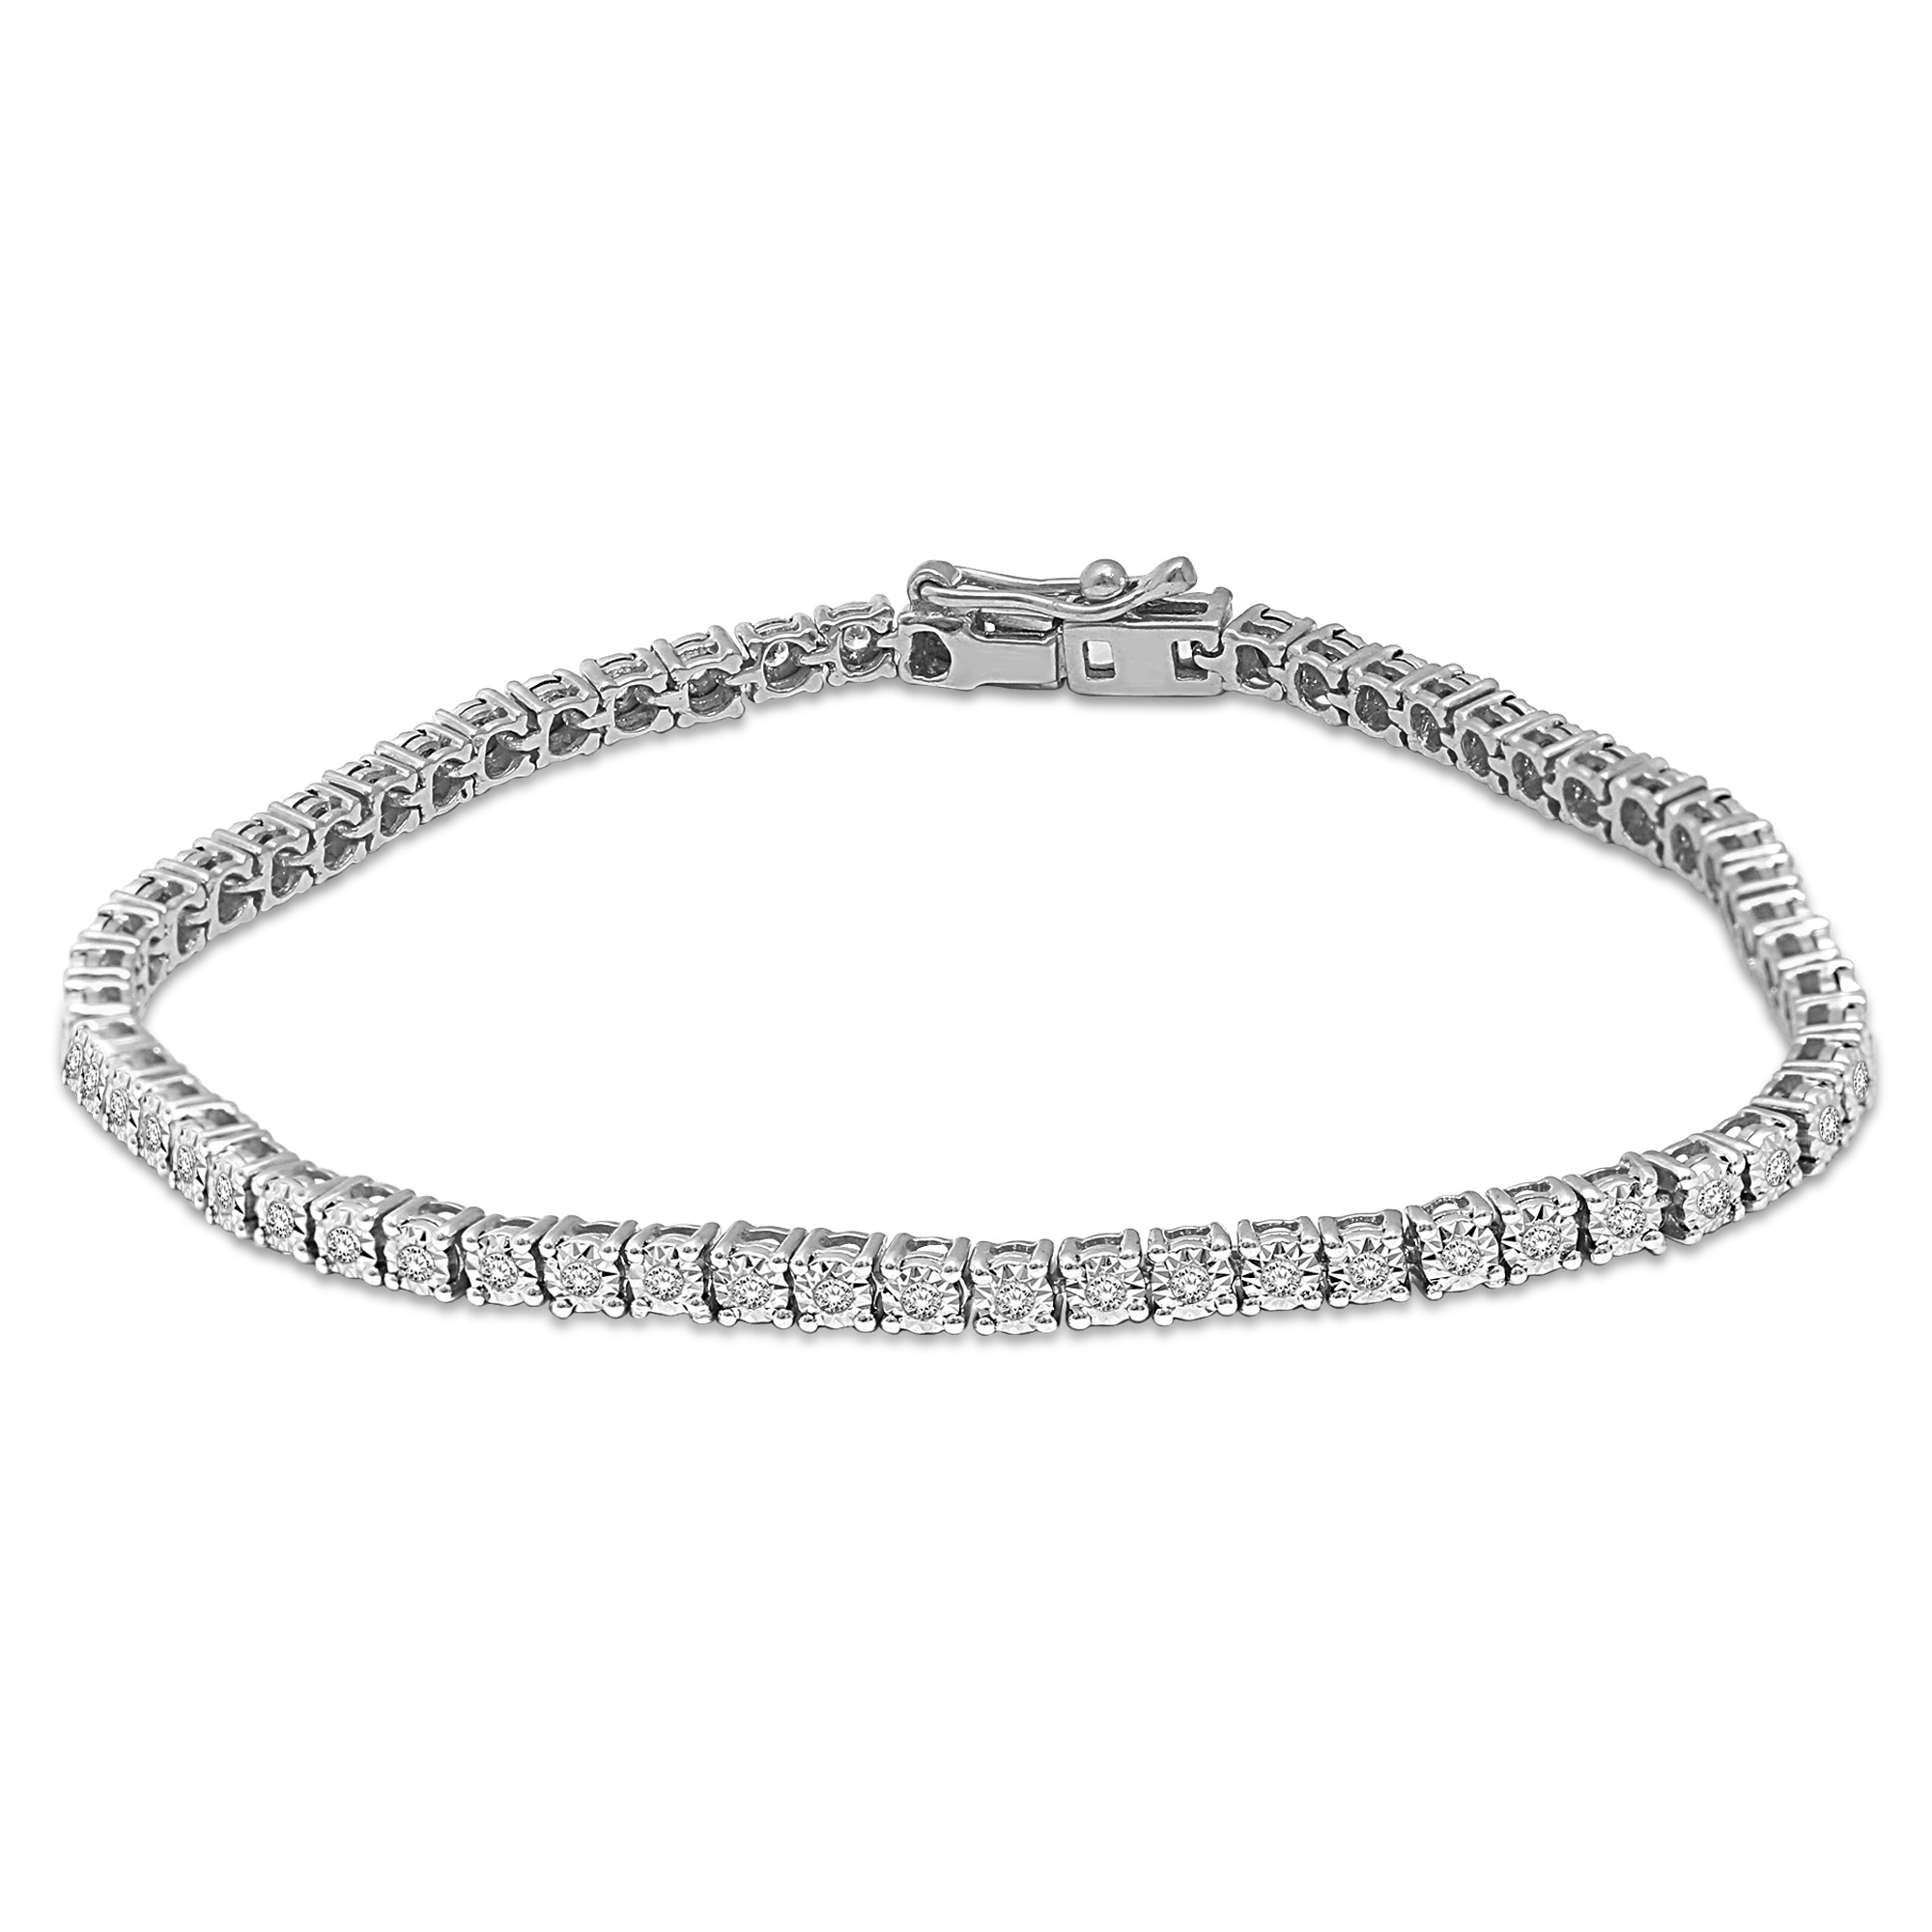 Bracelet tennis pour femme - Or blanc 14K & Diamants totalisant 2.00 Carat